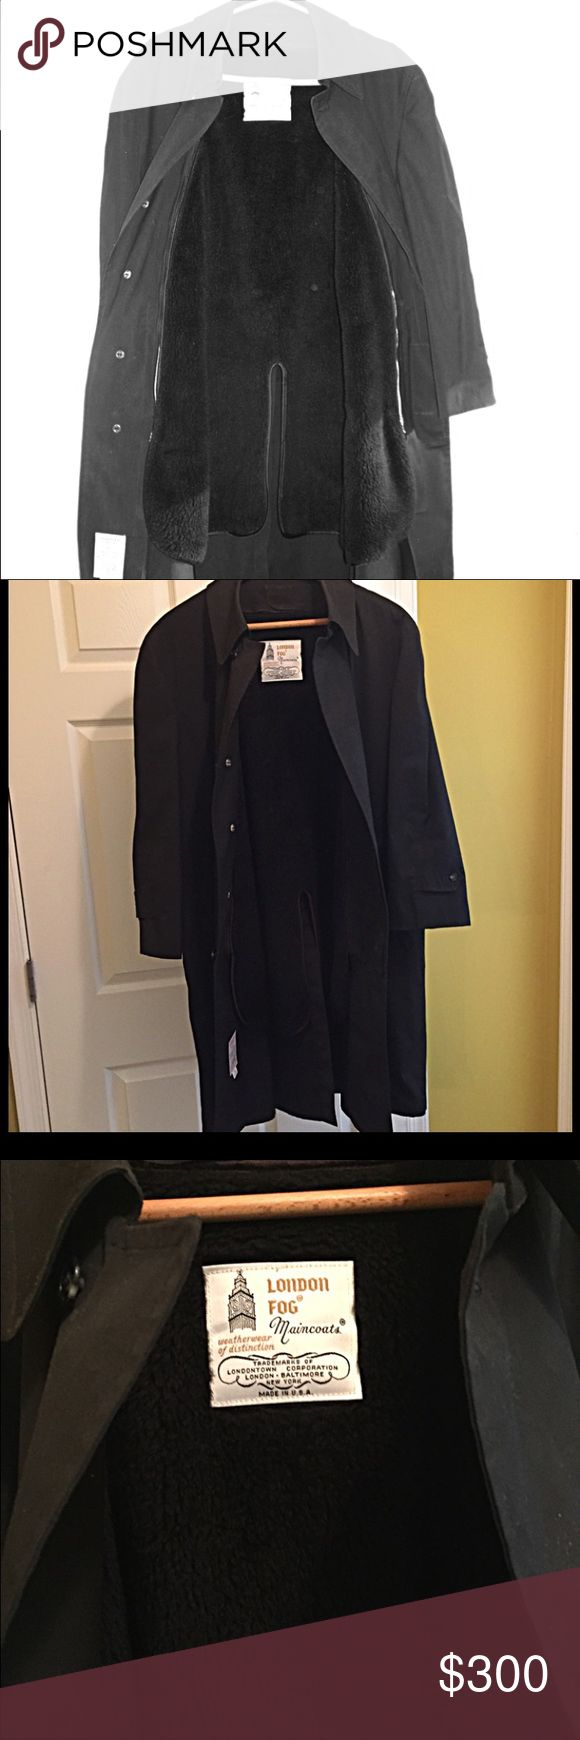 London Fog Mens Raincoat London Fog Mens Raincoat  Color Black  Size 44-Short  Has a removable lining that is to be used according to the weather - either rainy or cold or both!!  Can be used all-seasons!  Used only once - excellent condition!  *Has a couple of small marks on both sides of the inside of the collar. See picture #4. They do not show from the outside. I believe the marks are from the raincoat being hung on a hanger for a longtime w/o being used & maybe a little dusty. There is…